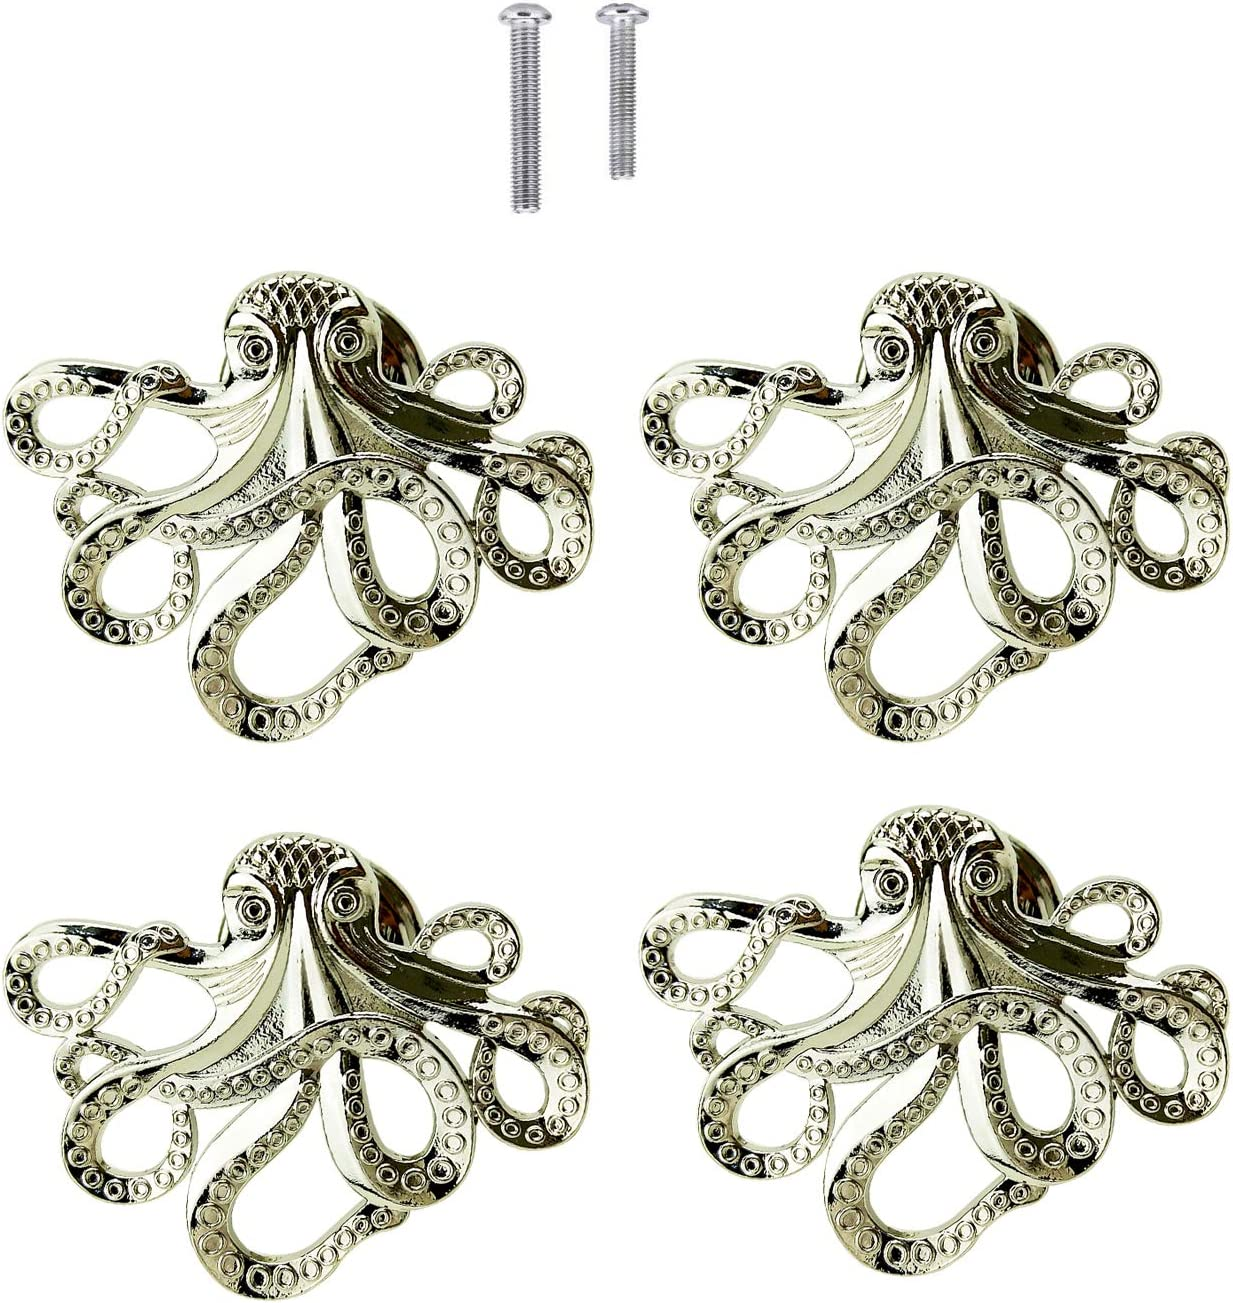 4 Octopus Drawer knobs